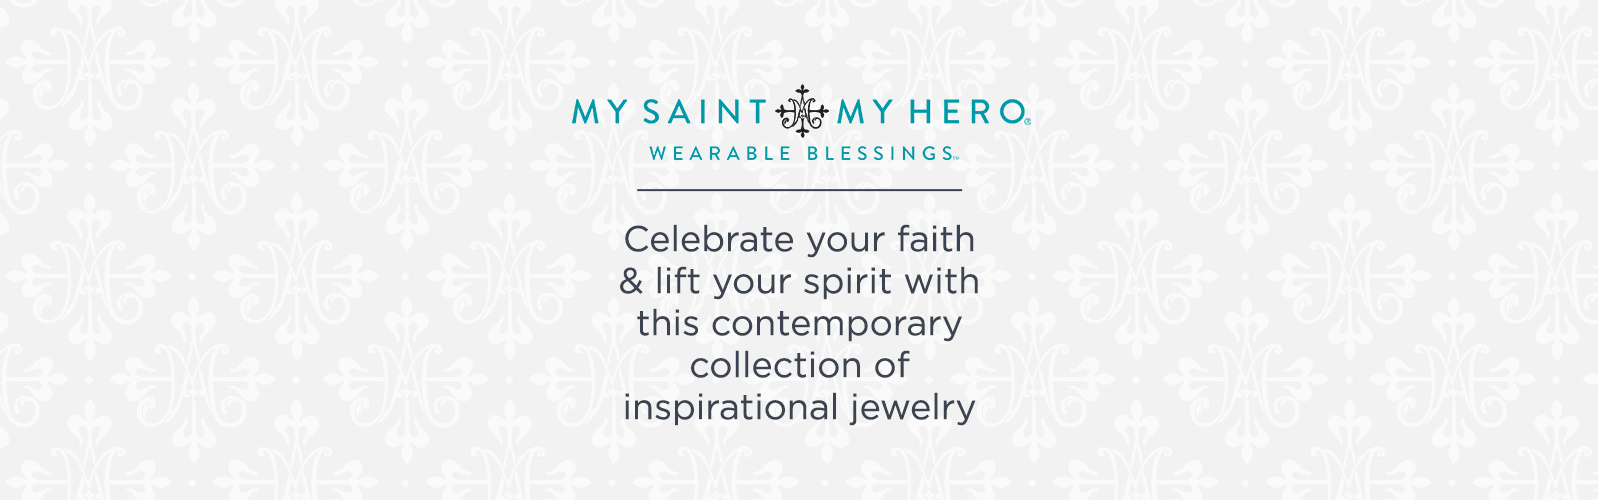 My Saint My Hero Wearable Blessings - Celebrate your faith & lift your spirit with this contemporary collection of inspirational jewelry